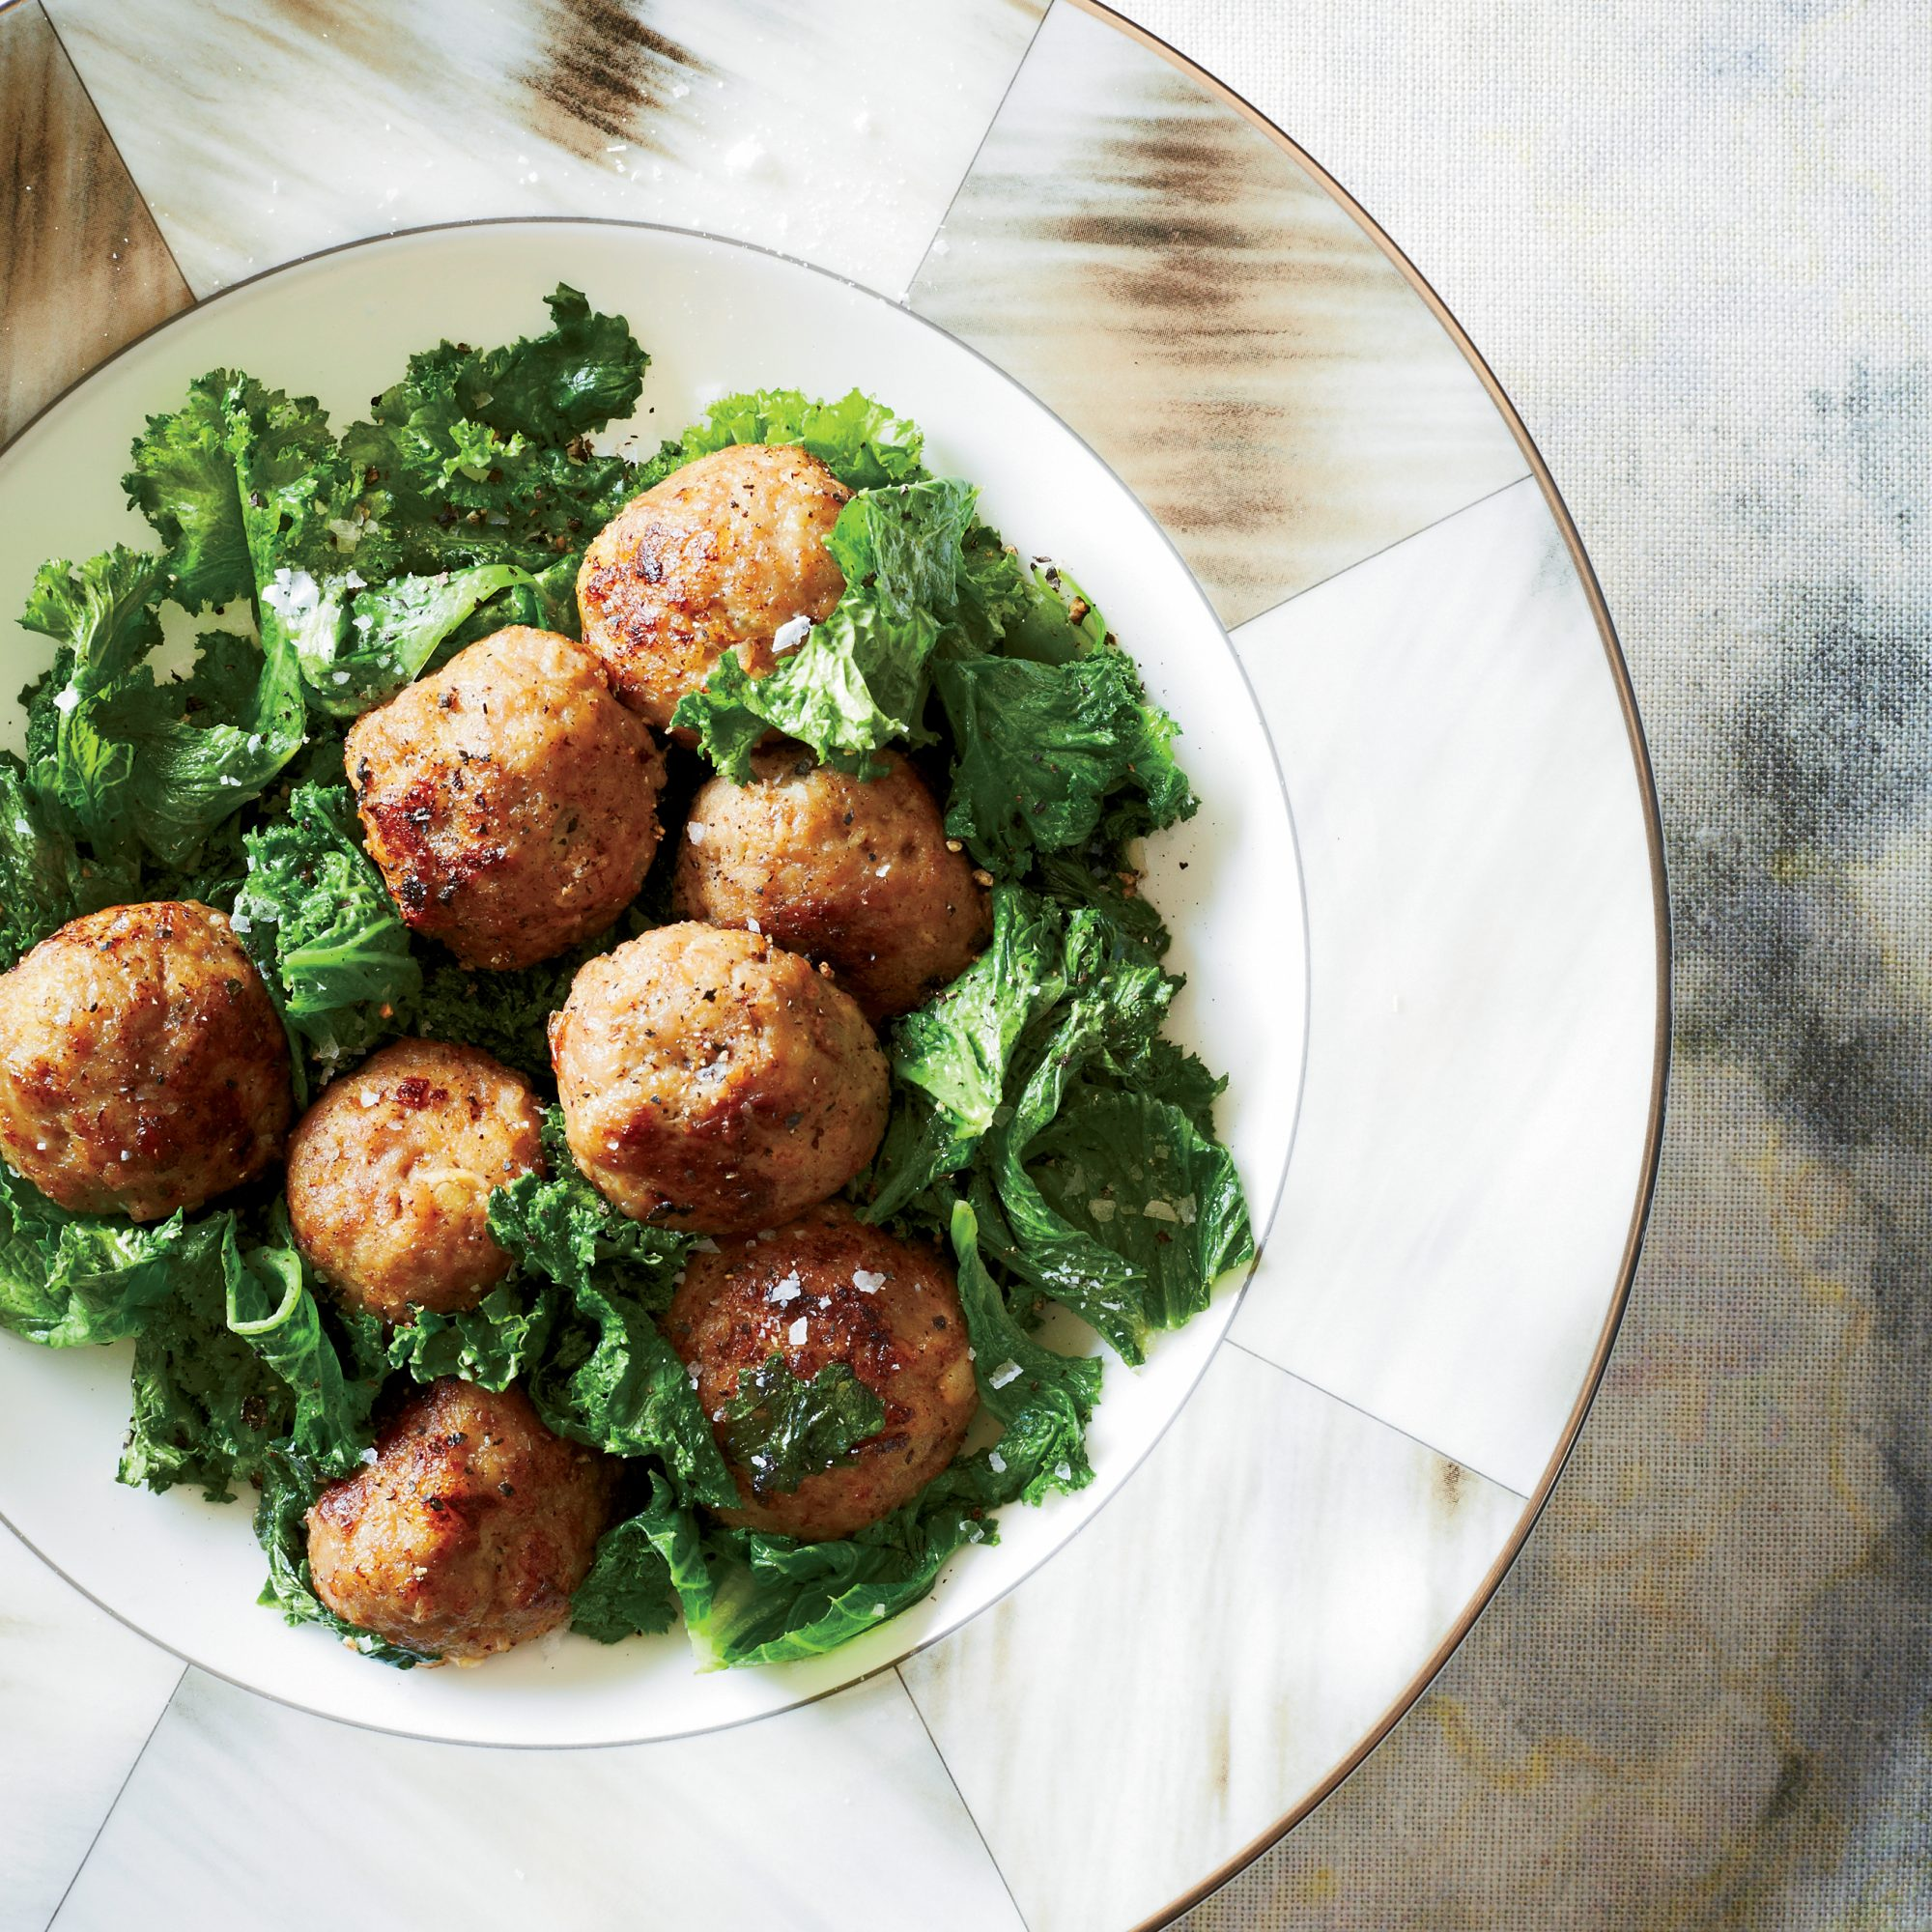 201404-r-veal-meatballs-with-mustard-greens.jpg